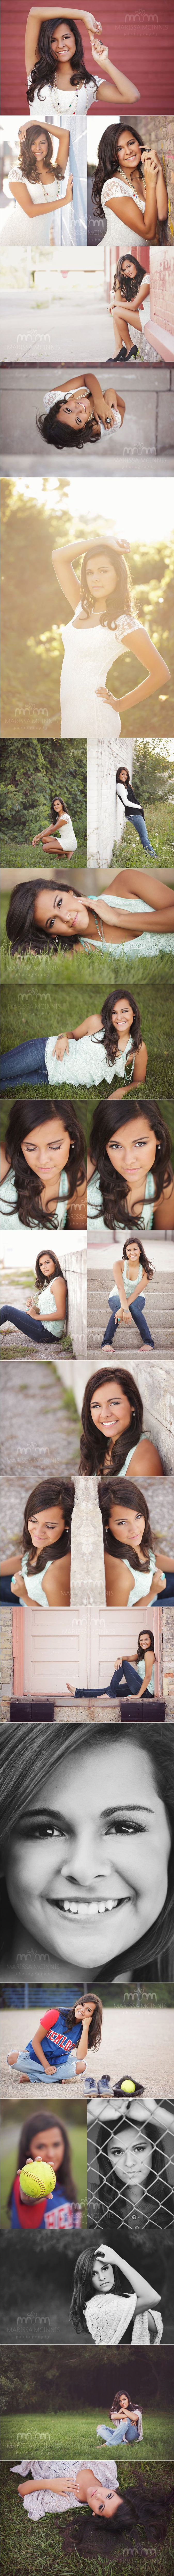 senior feature